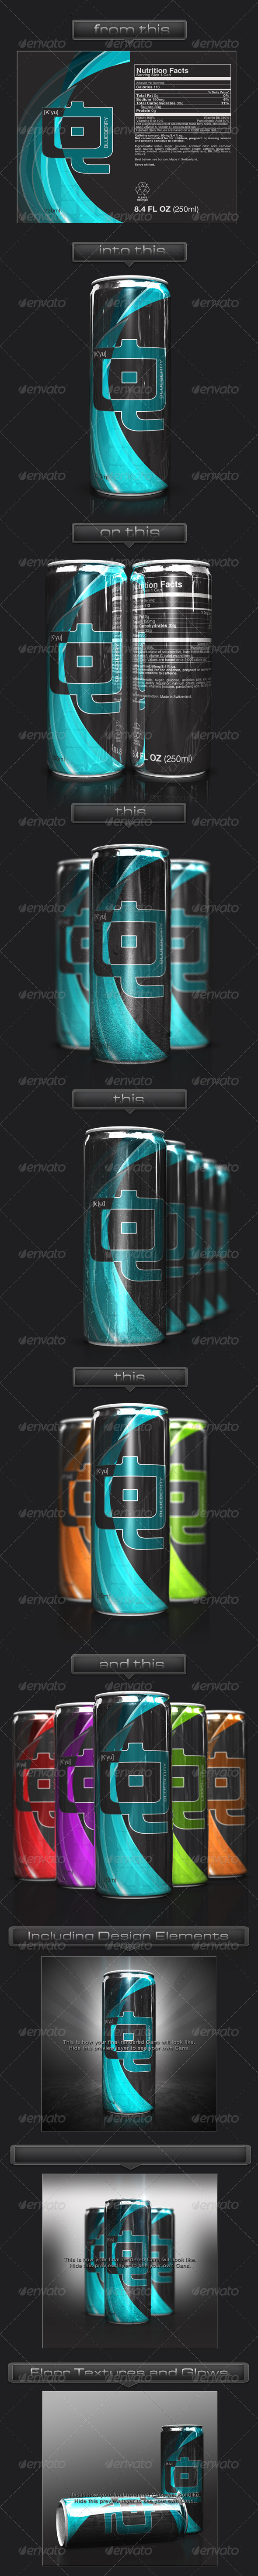 3D Energy Drink Soda Can Mockup - Food and Drink Packaging